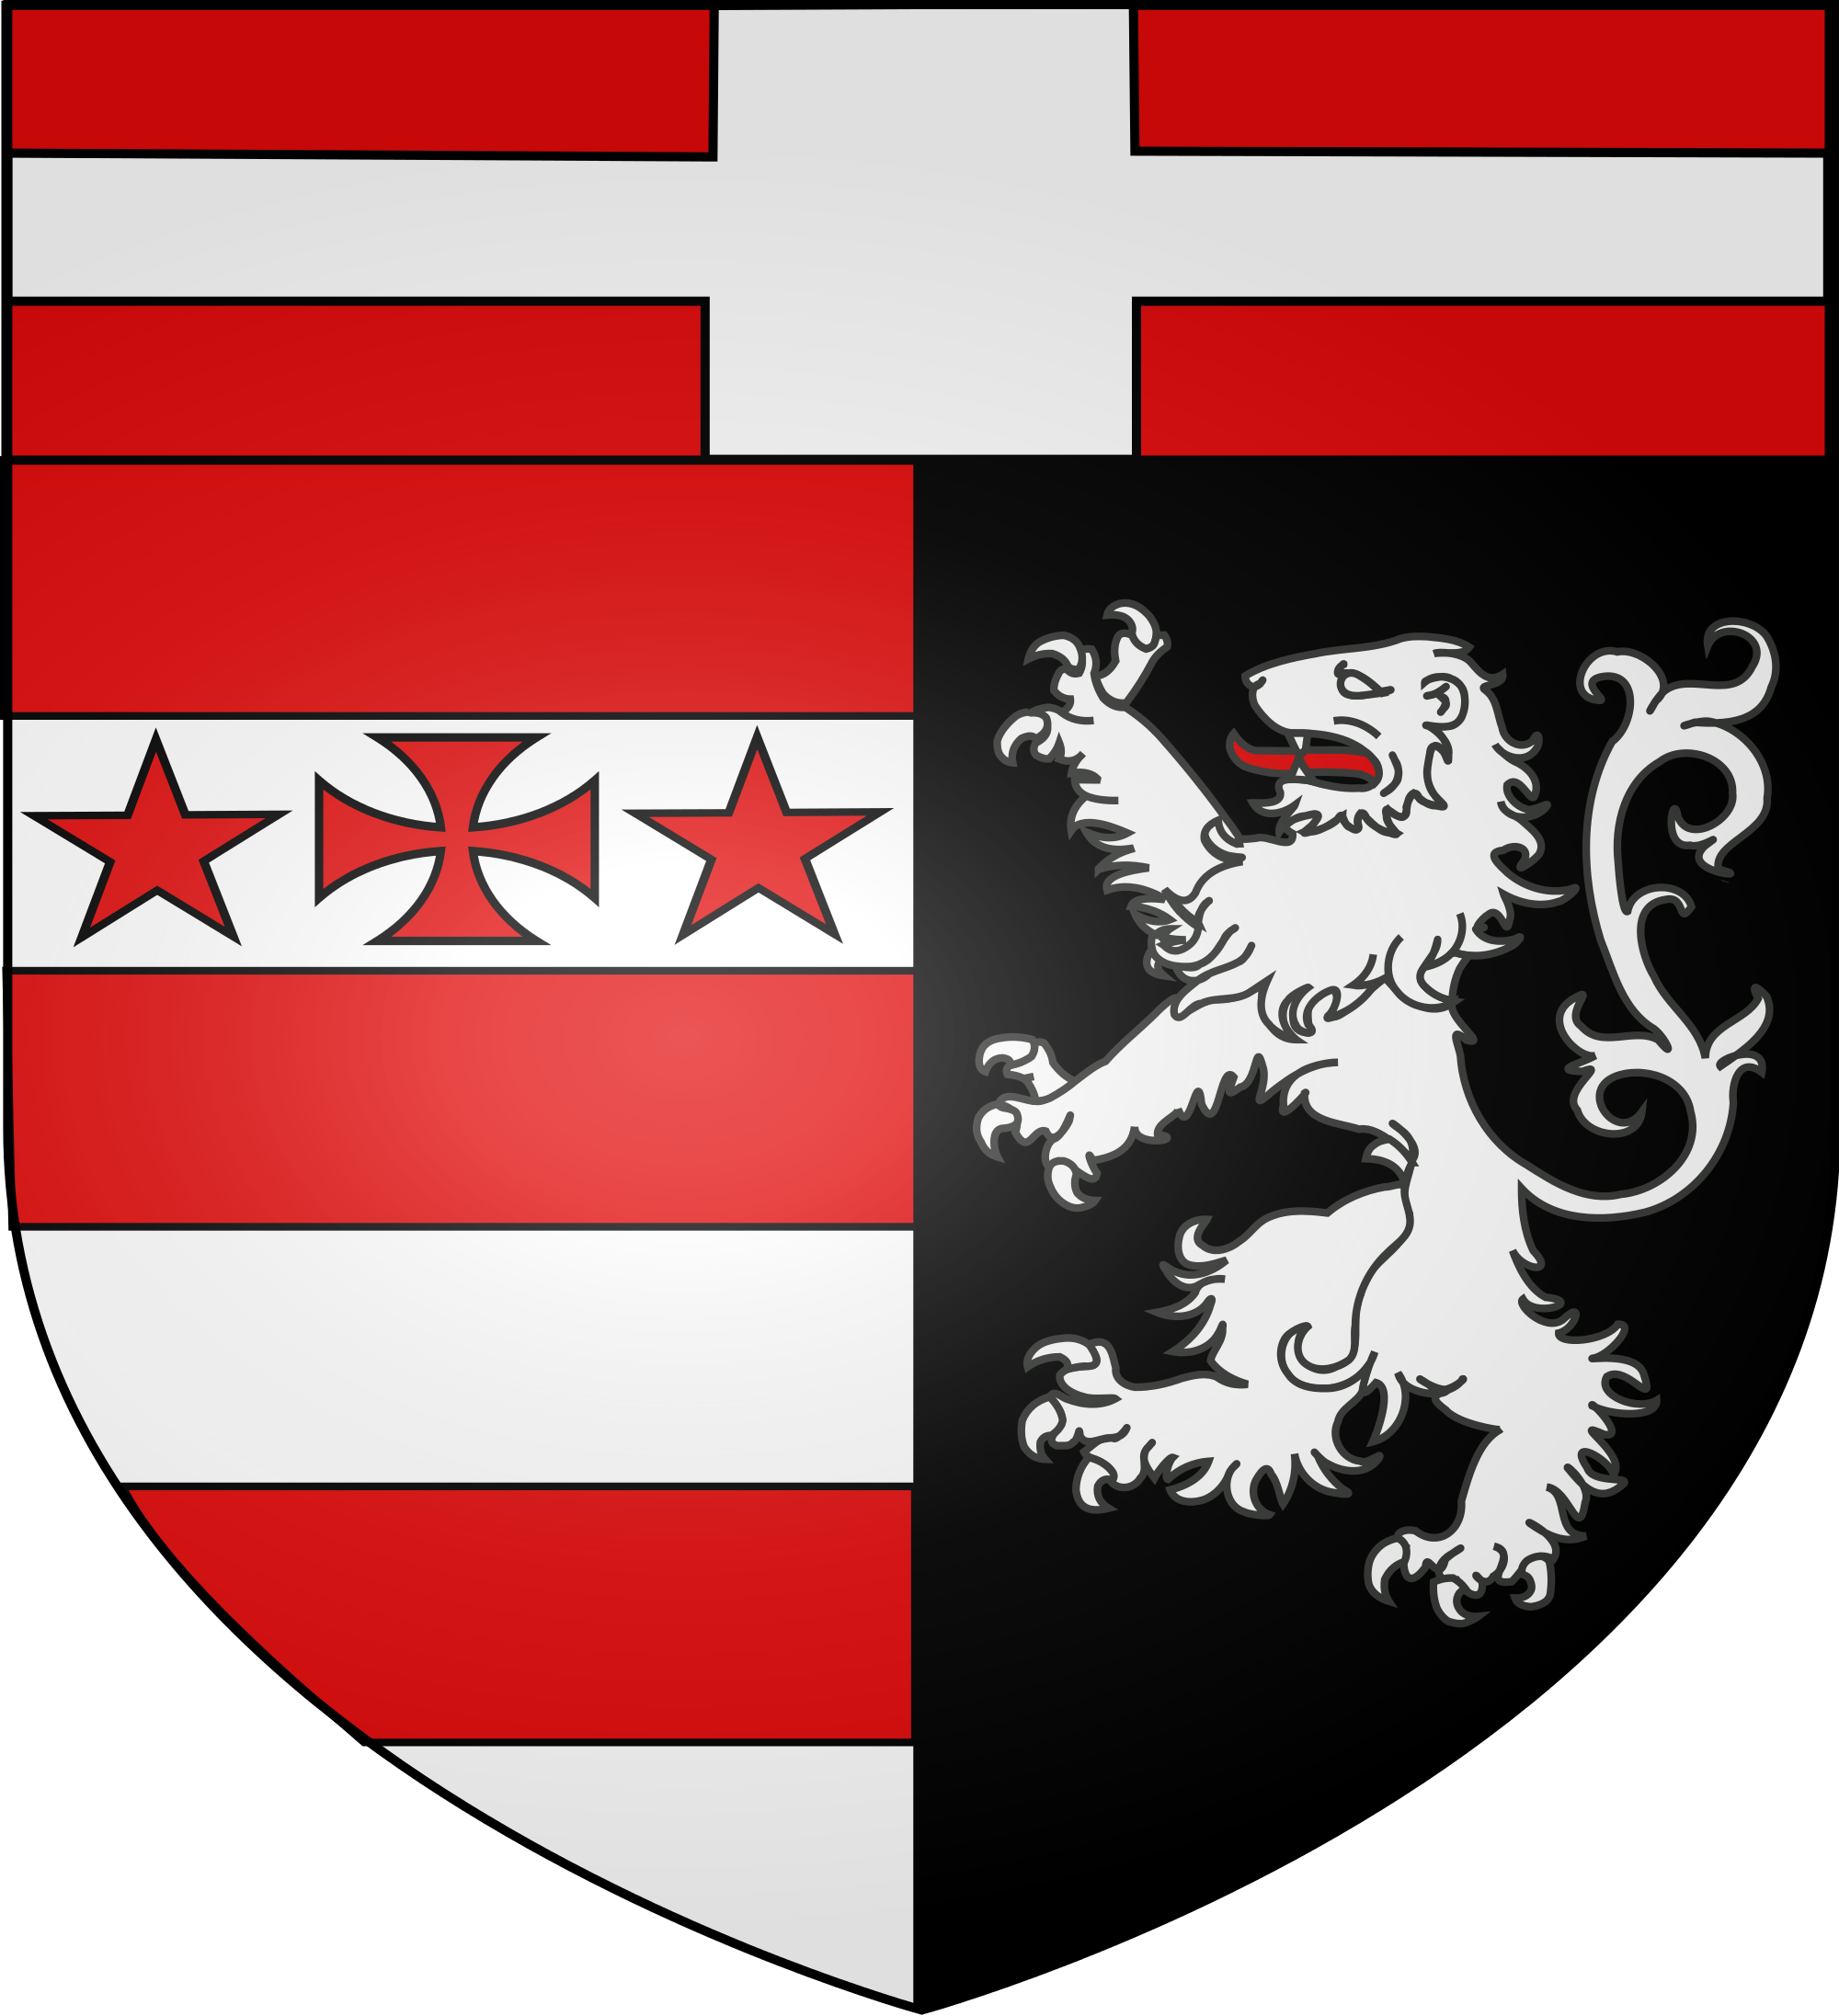 File:Blason ville It Gressoney.